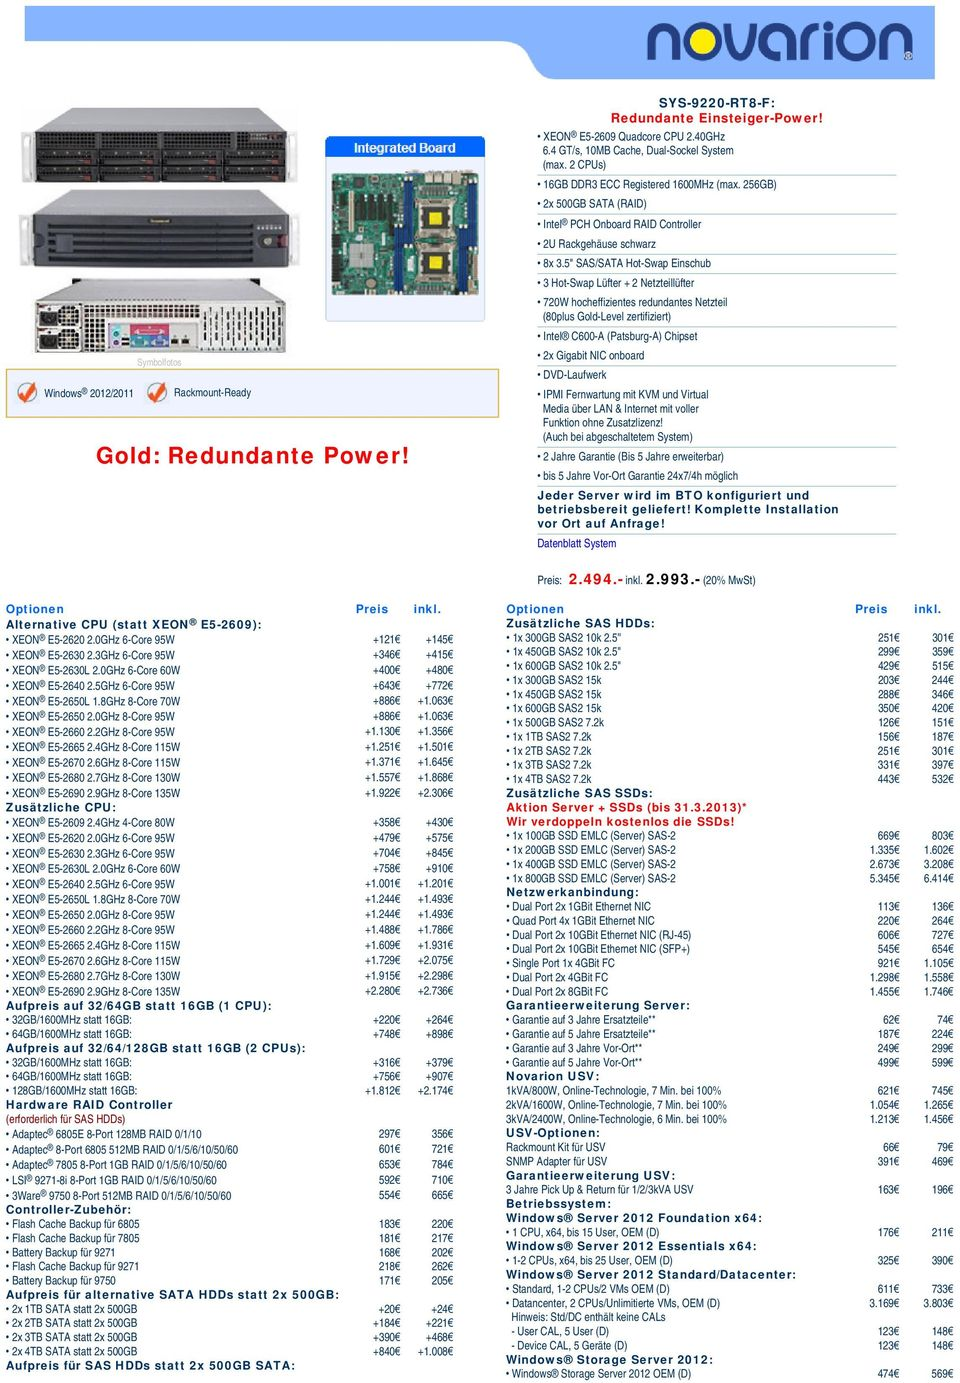 "5"" SAS/SATA Hot-Swap Einschub 3 Hot-Swap Lüfter + 2 Netzteillüfter 720W hocheffizientes redundantes Netzteil (80plus Gold-Level zertifiziert) Intel C600-A (Patsburg-A) Chipset 2x Gigabit NIC onboard"